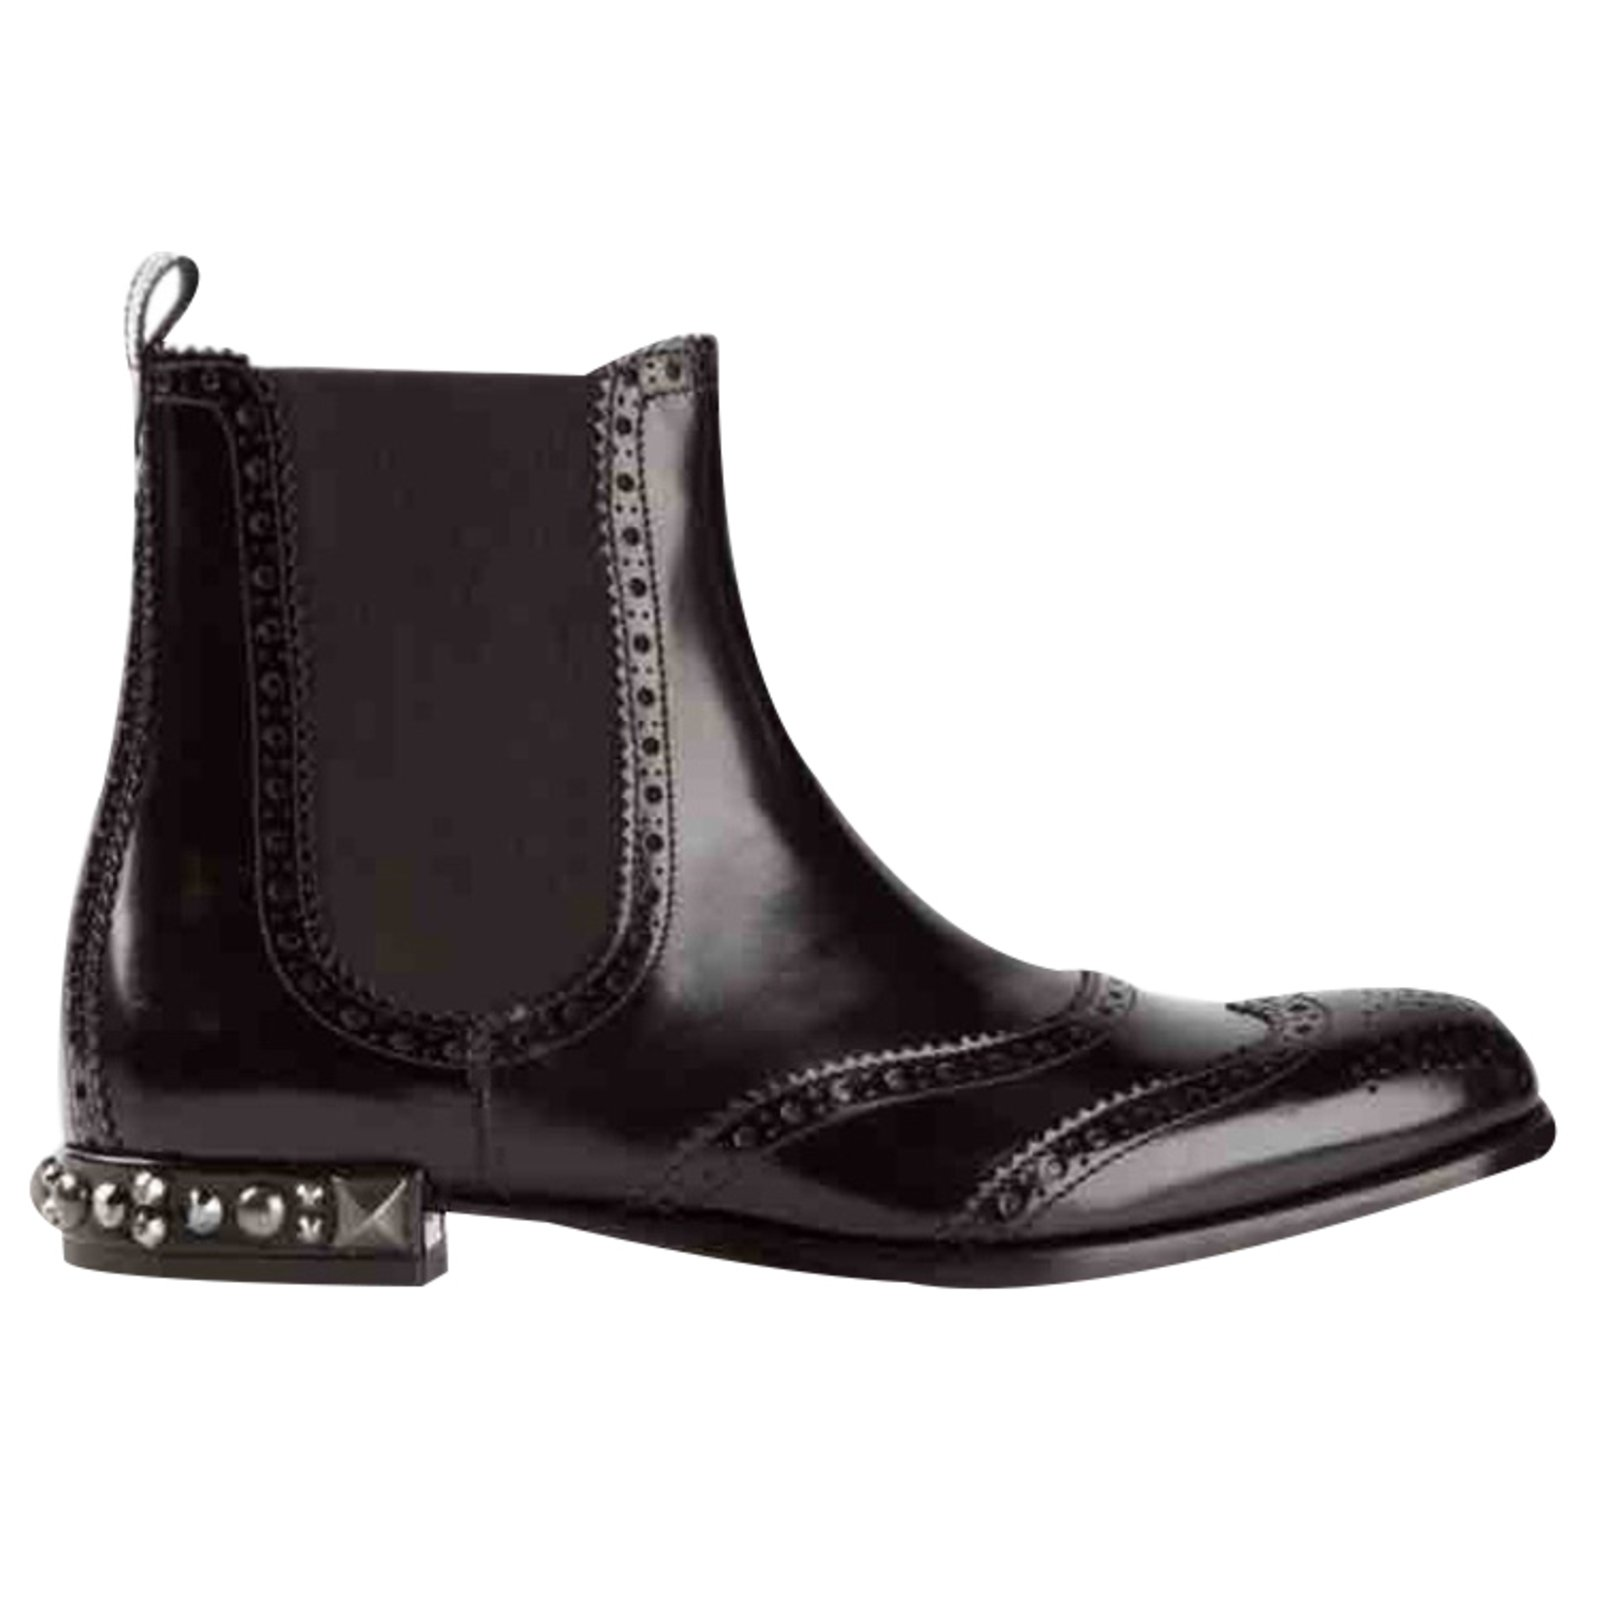 Dolce   Gabbana Ankle Boots Ankle Boots Patent leather Black ref.26308 7143550f4191